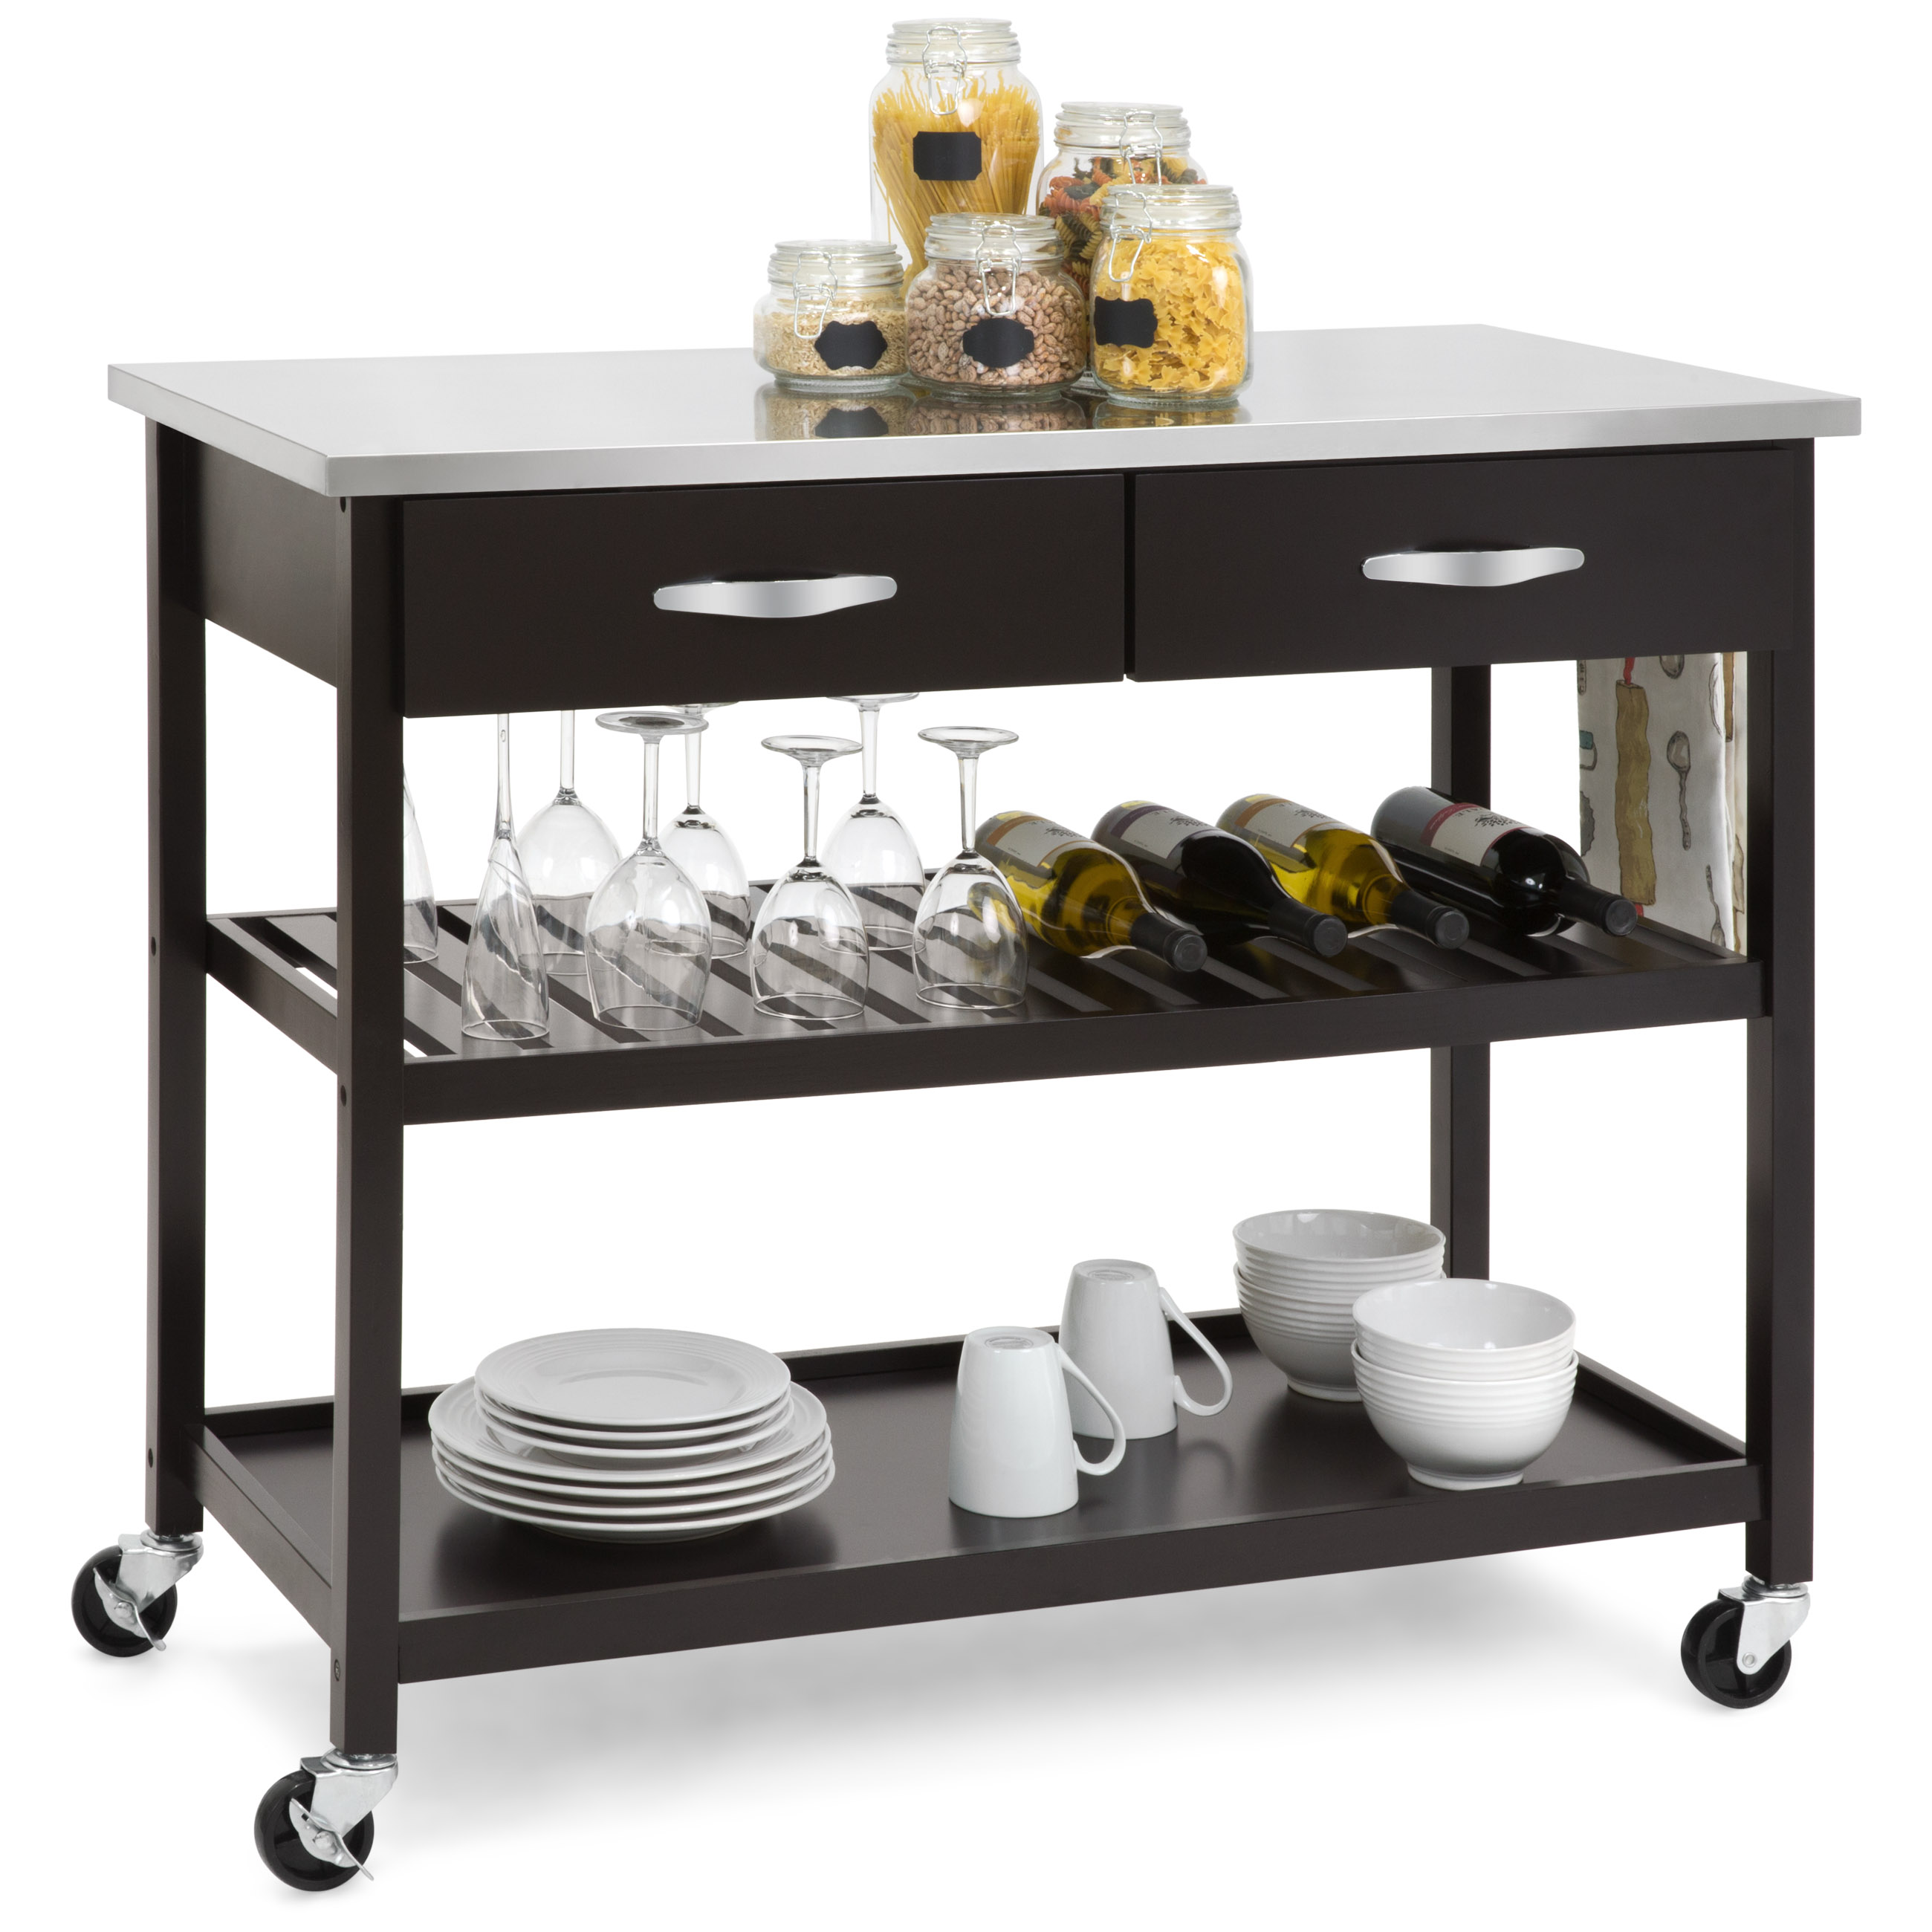 Best Choice Products Mobile Kitchen Island Utility Cart W/ Stainless Steel  Countertop, Drawers,